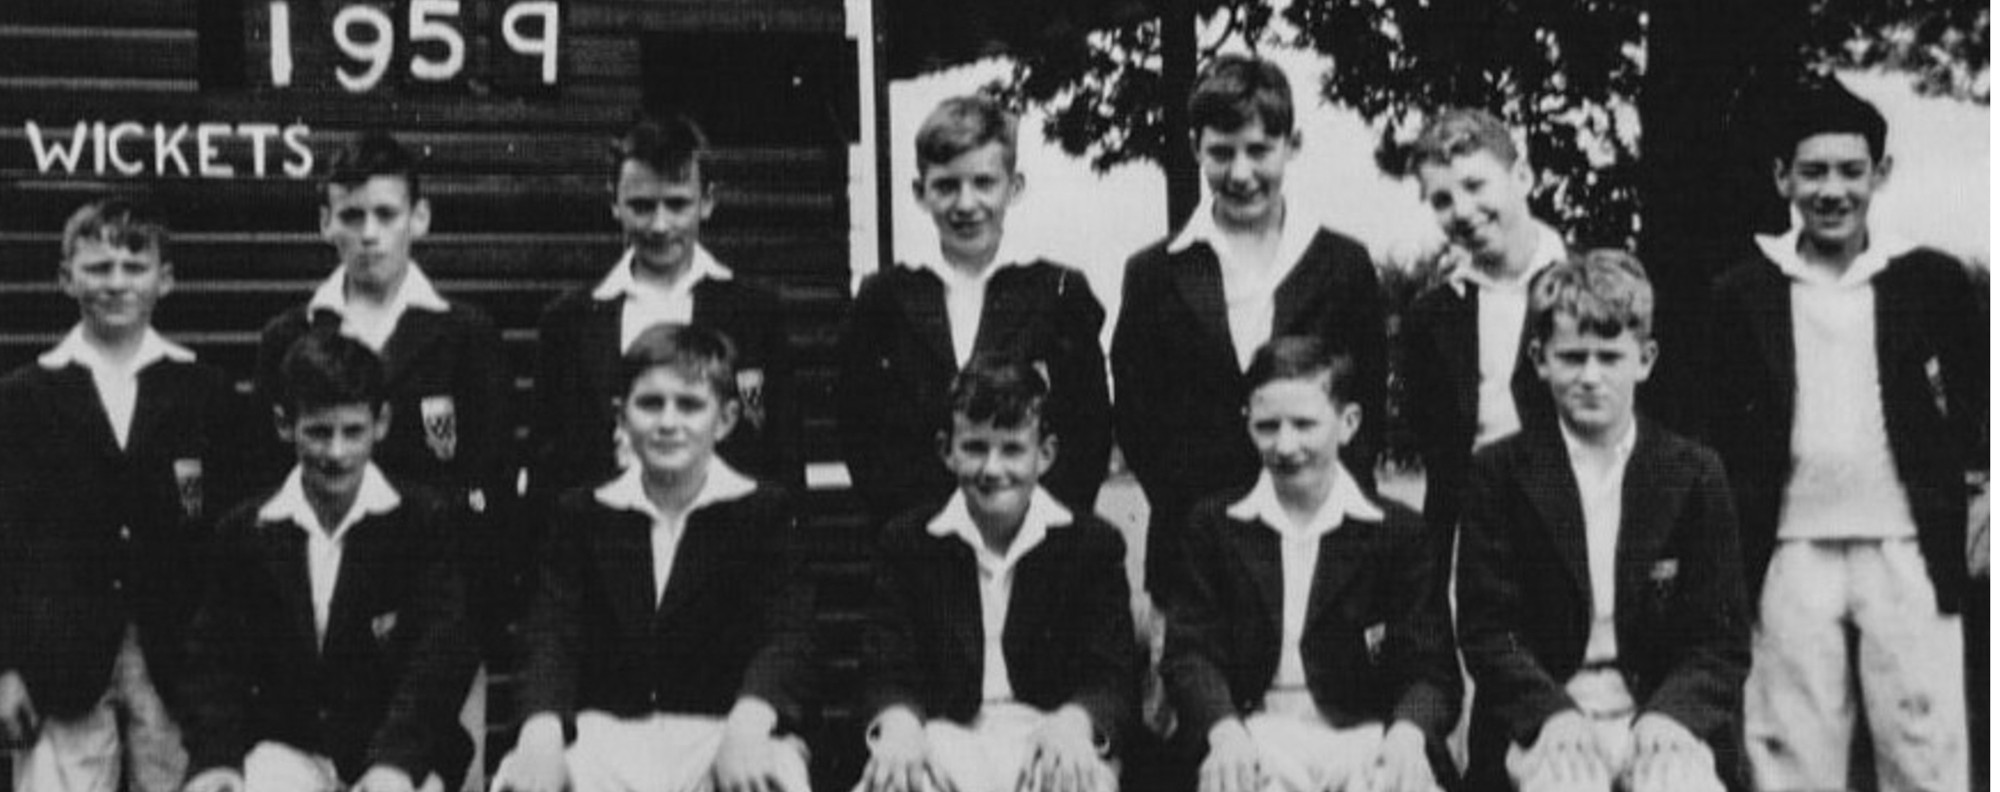 Ian Gill (far right) in the under-14s cricket team at Ratcliffe College.